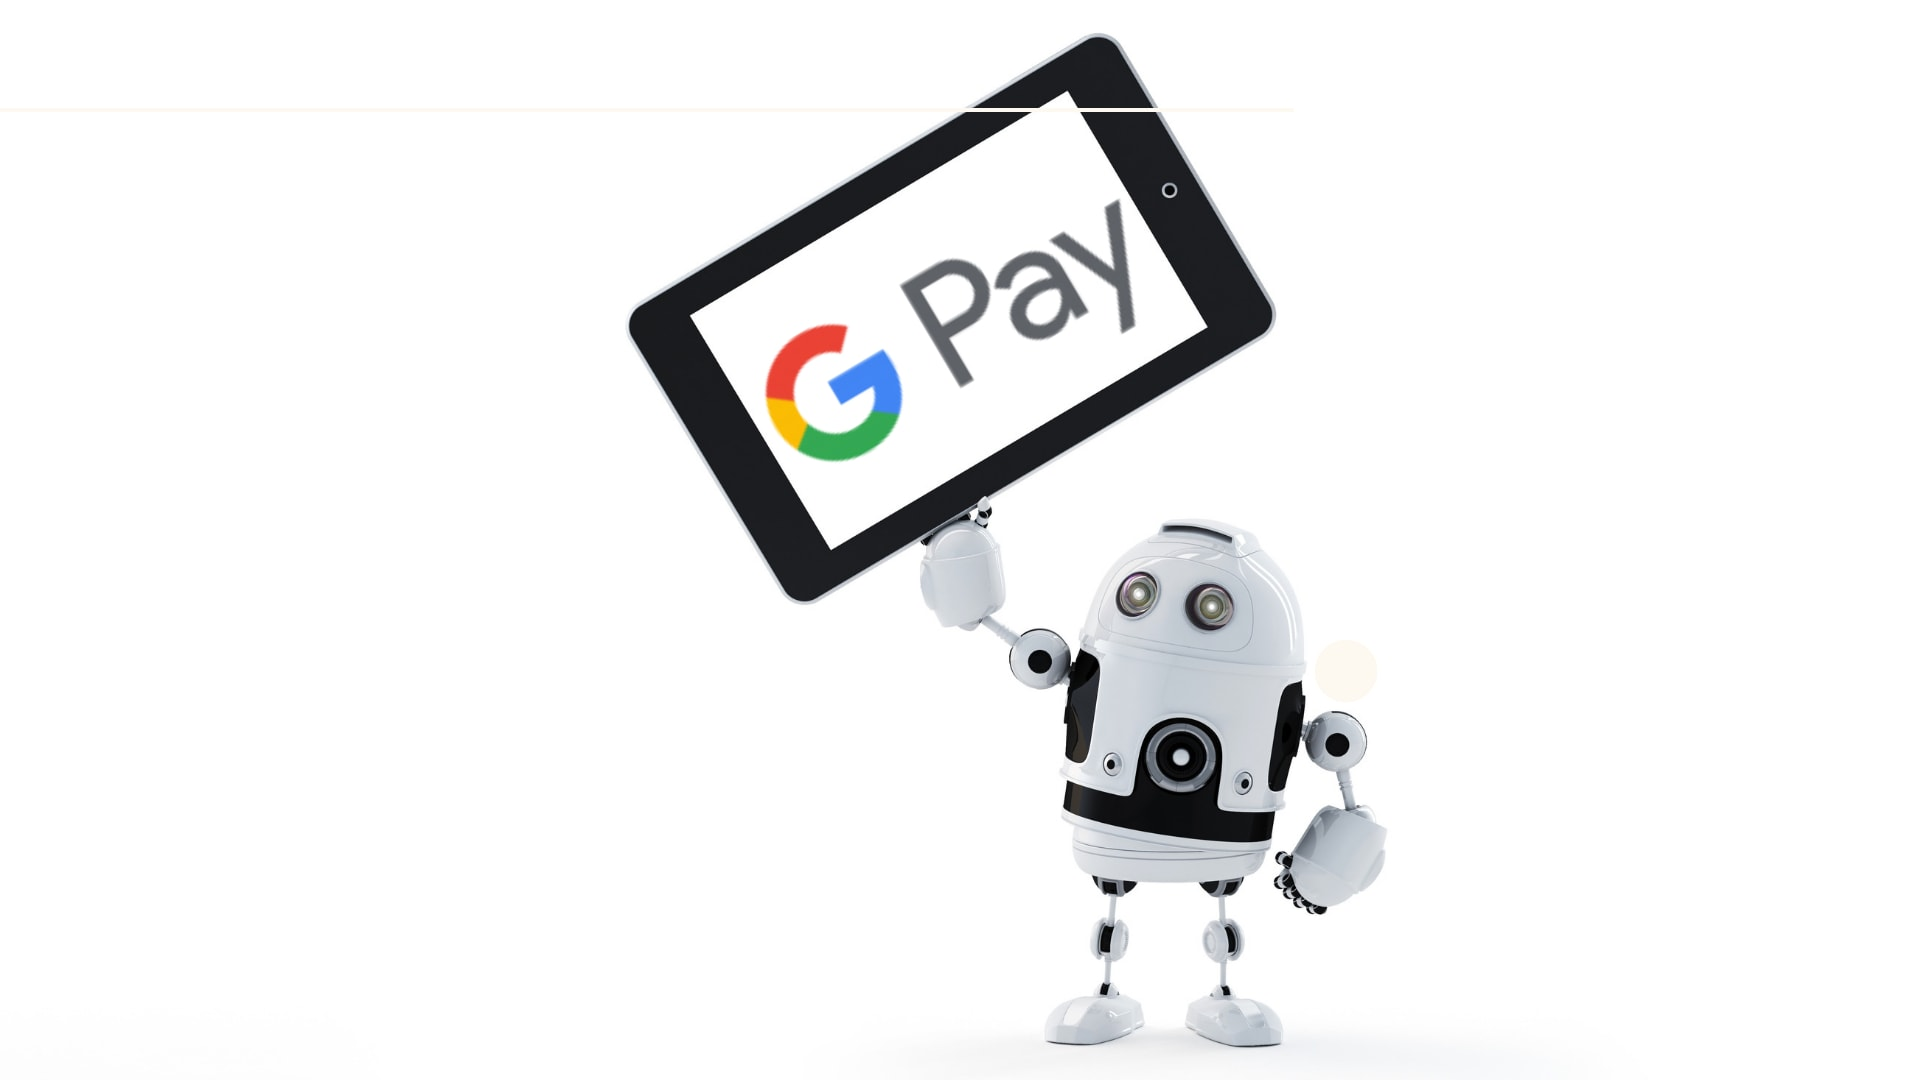 google pay - 10 Legit Ways to Make Money Online With Google